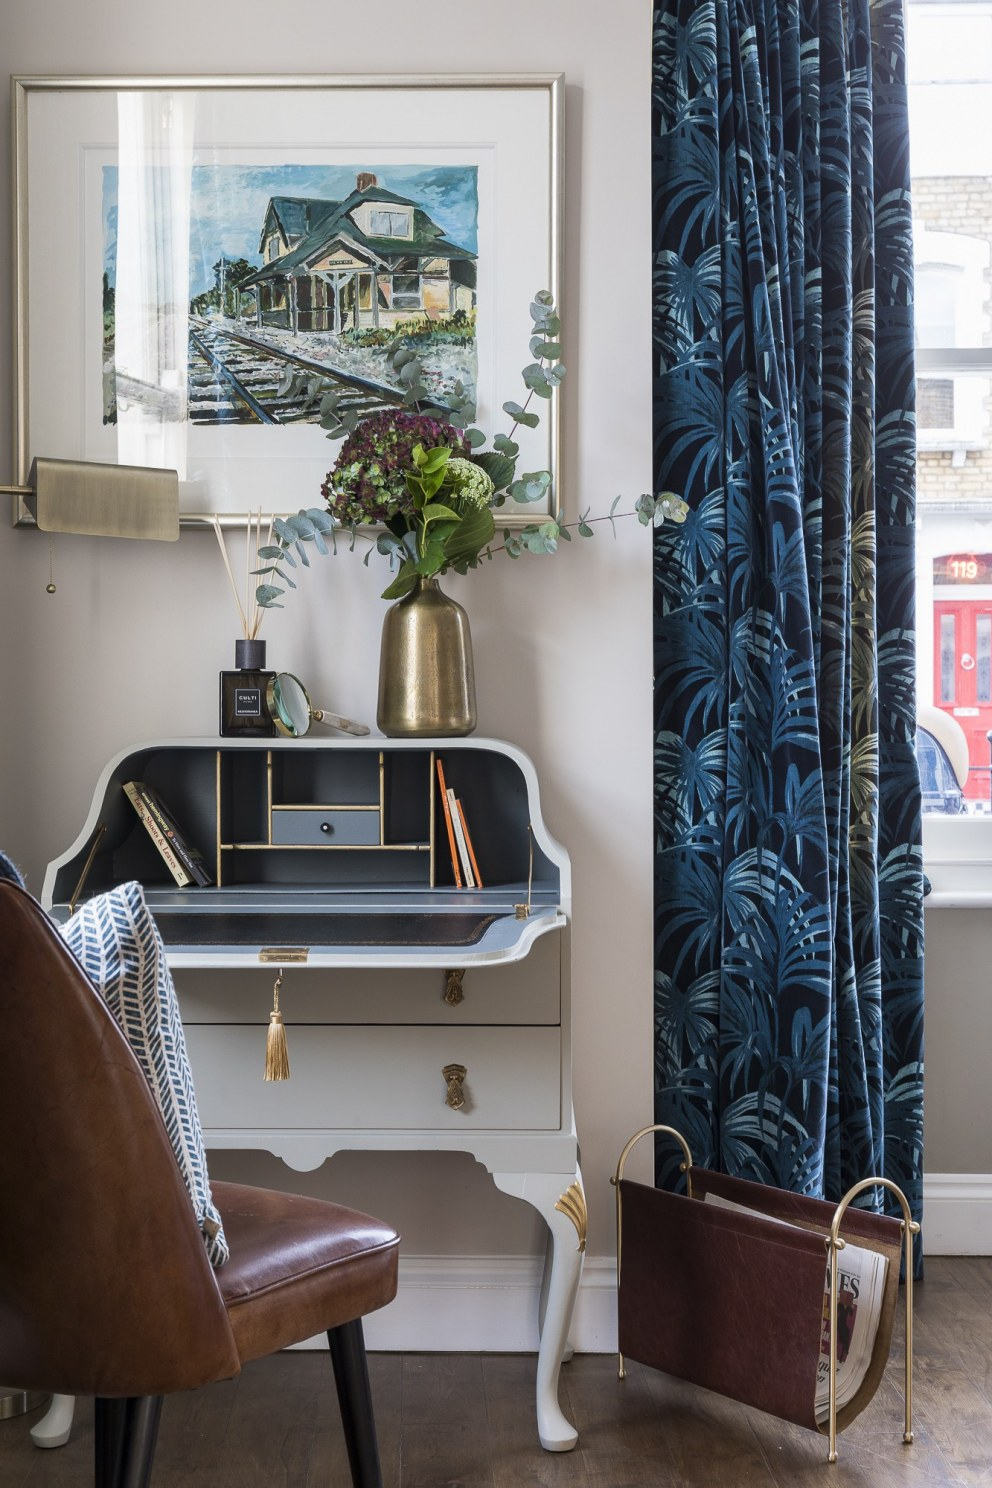 Four Bedroom Victorian Townhouse in Stoke Newington, London | Living Room | Interior Designers